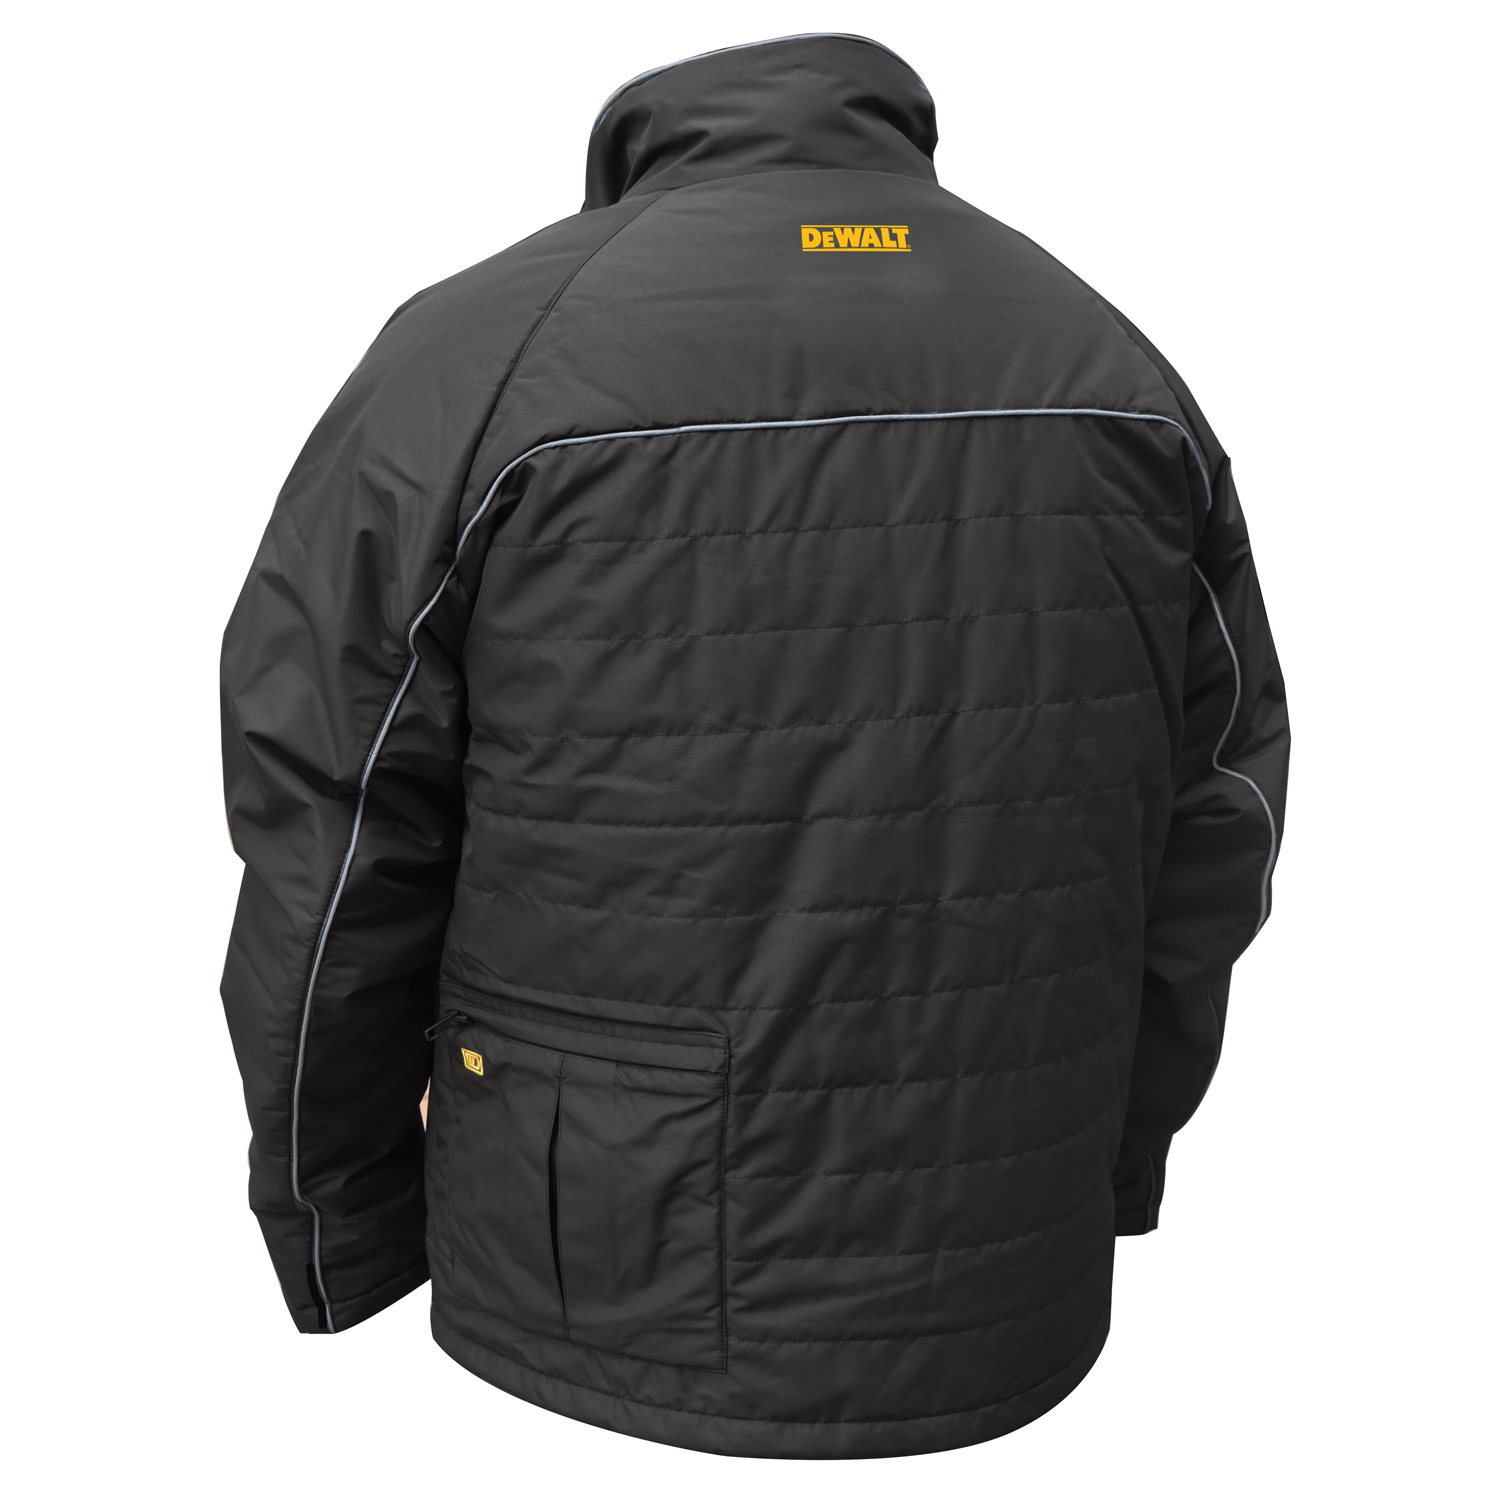 DeWalt DCHJ076B Heavy Duty Heated Work Jacket - Battery ...